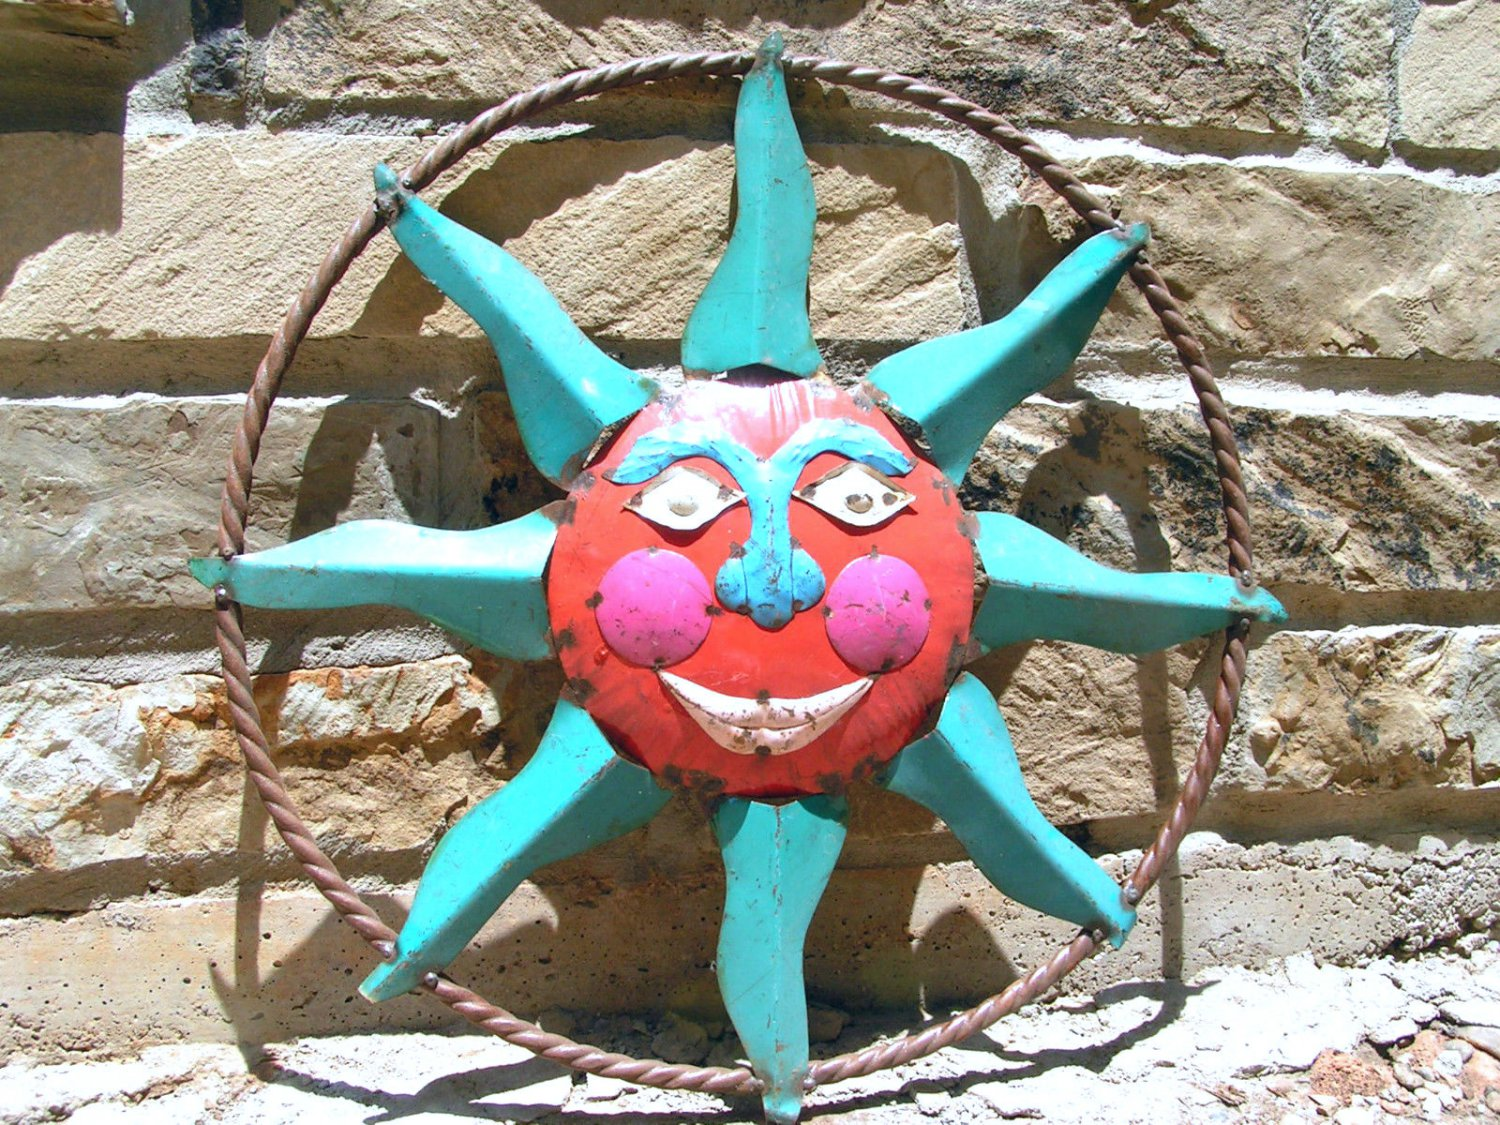 Upcycled junk iron sun face wall garden art sign 0643 ec for Upcycled garden projects from junk